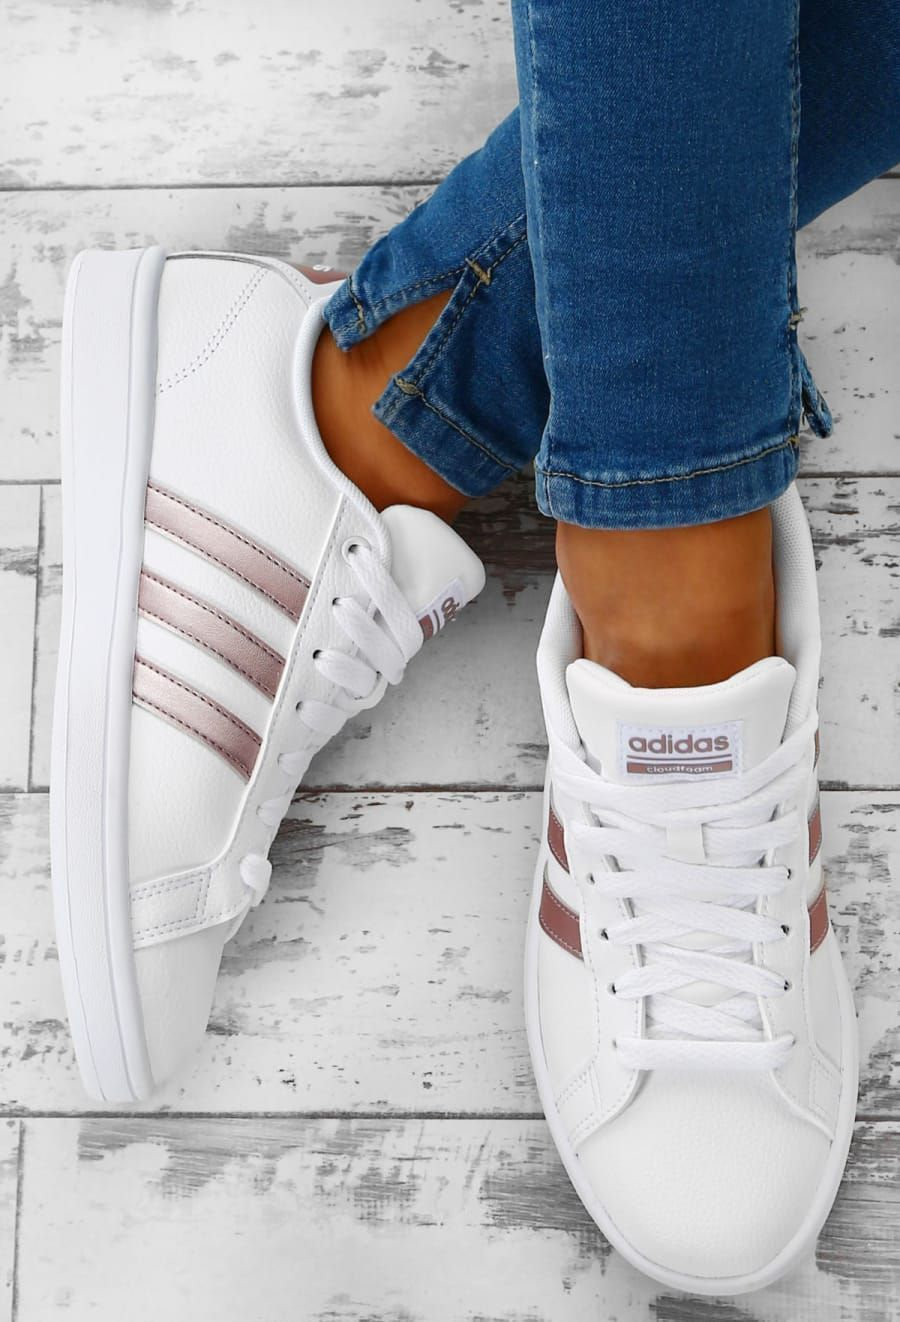 finest selection 7cd6b 24dc1 Adidas Cloudfoam Advantage White and Rose Gold Stripe Trainers   Pink  Boutique